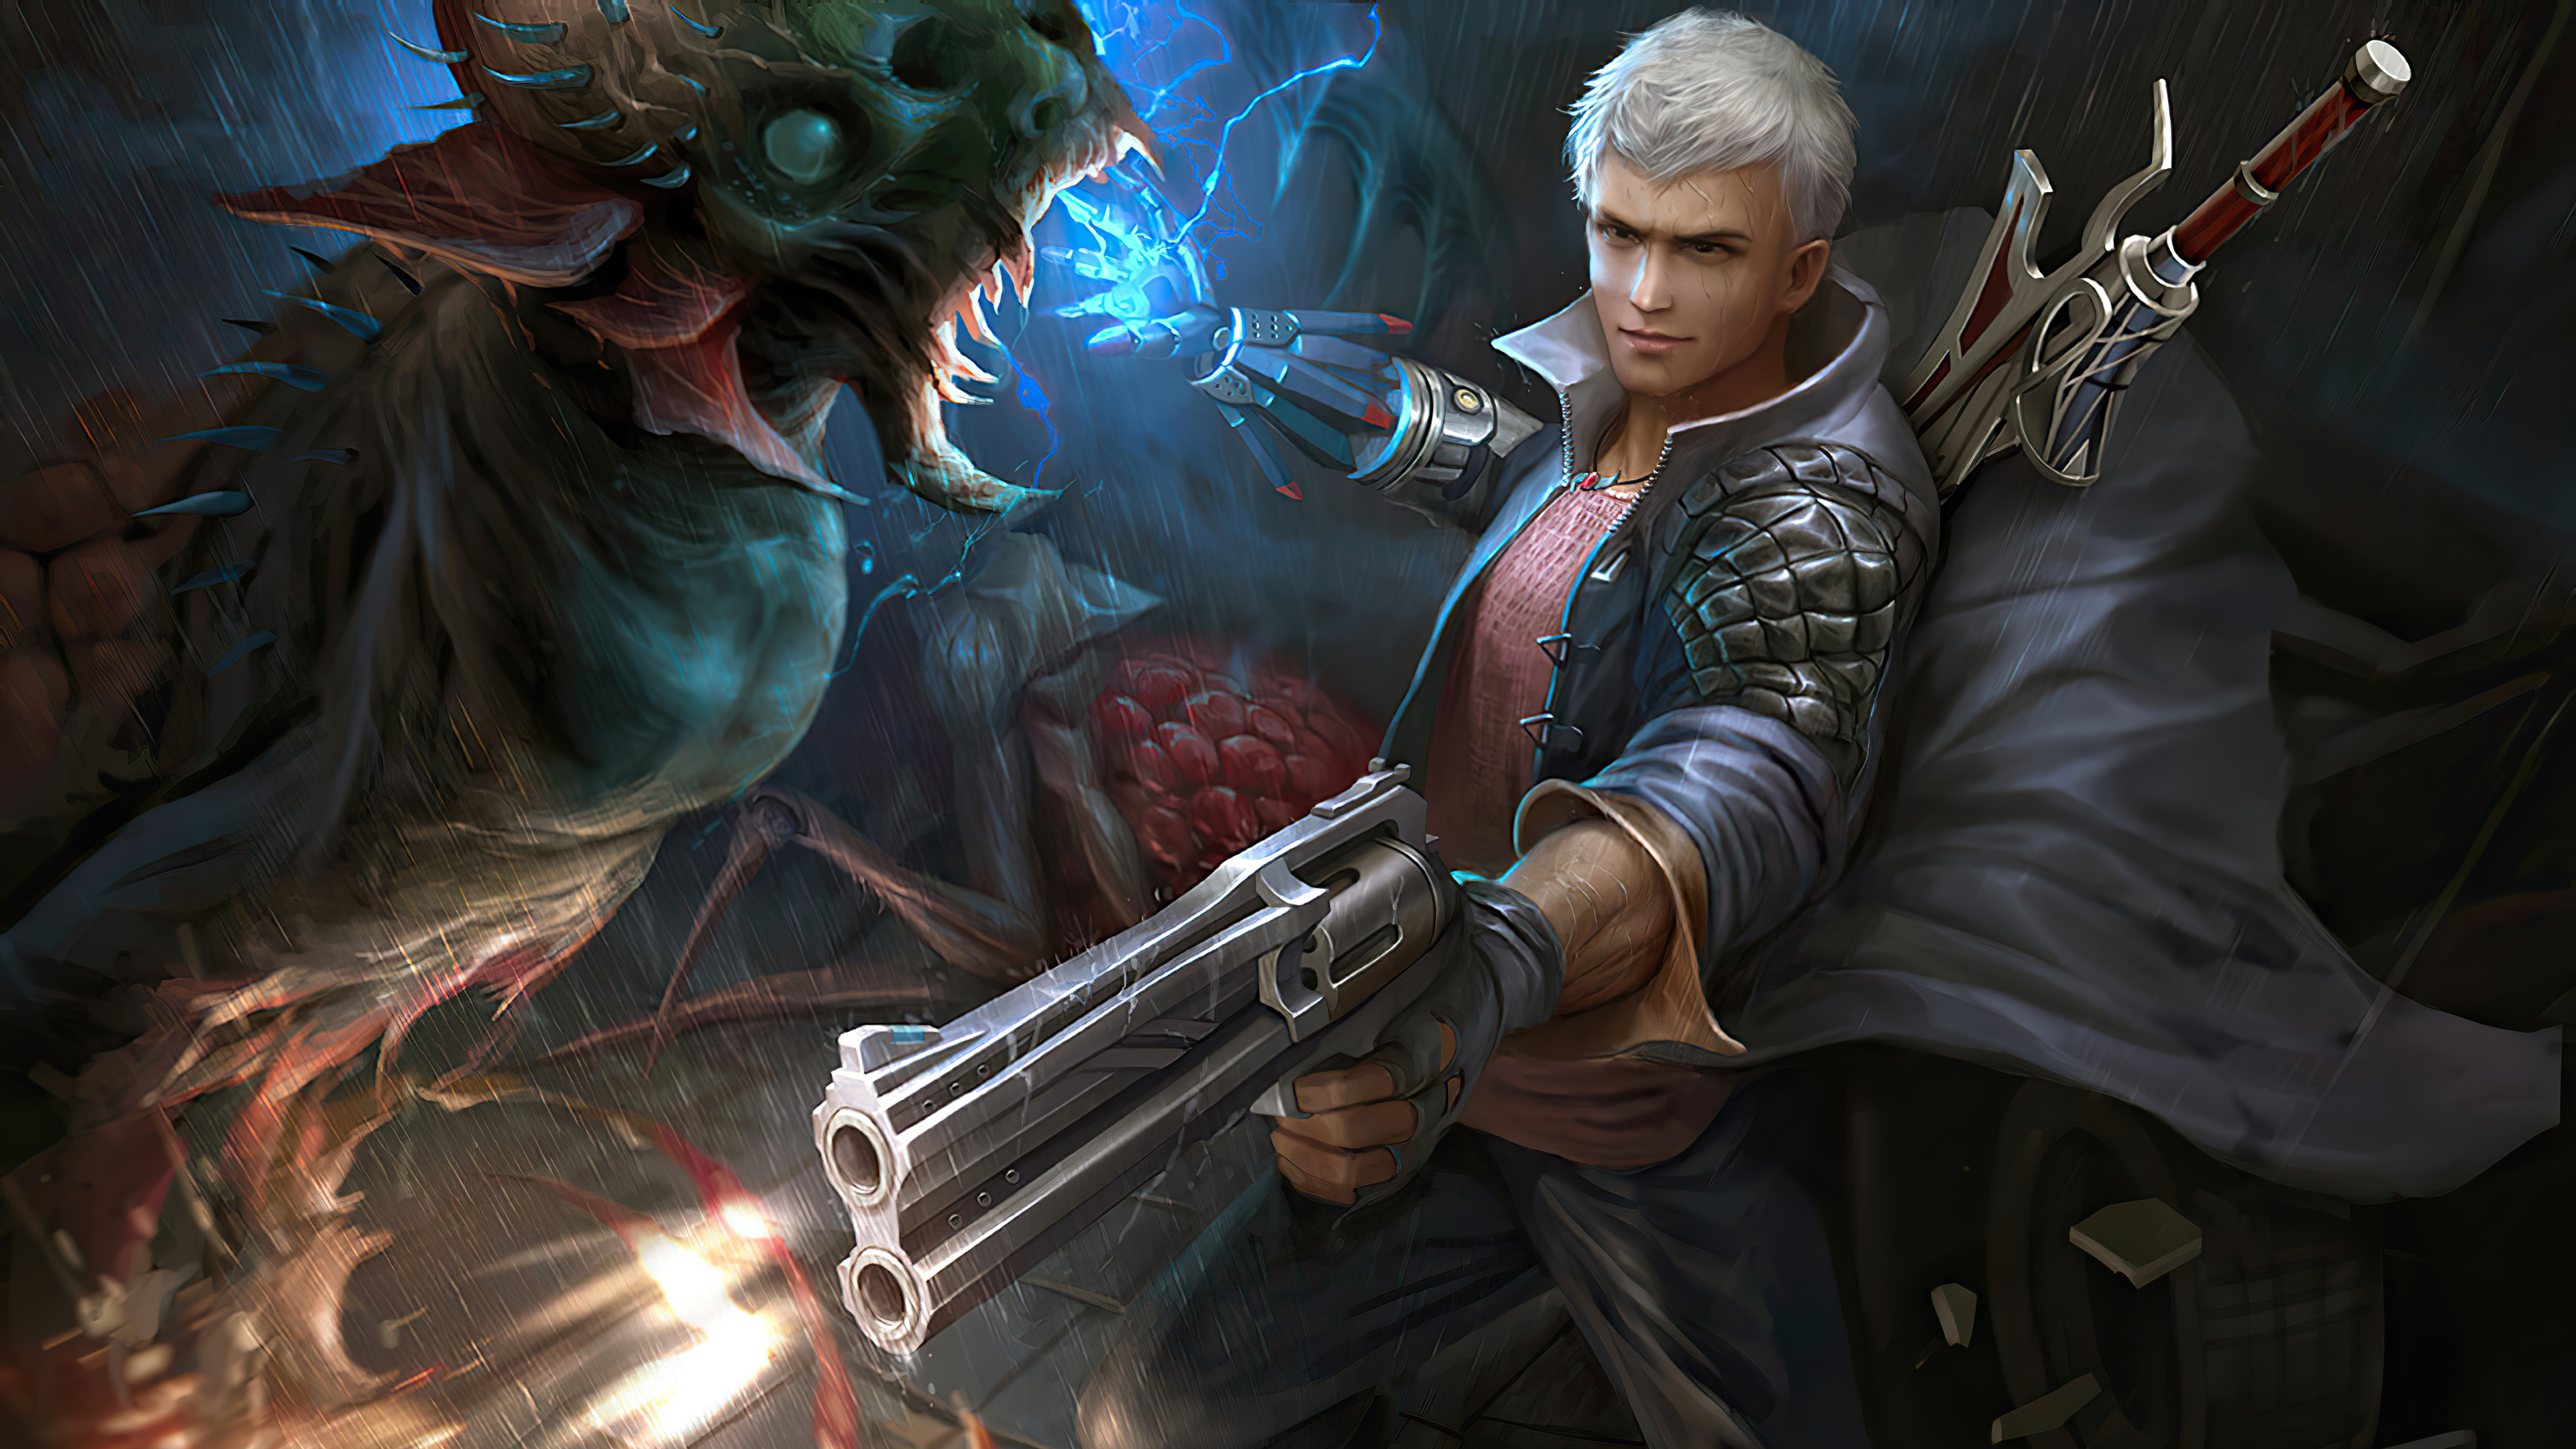 New Devil May Cry 5 Art Wallpaper, HD Games 4K Wallpapers ...